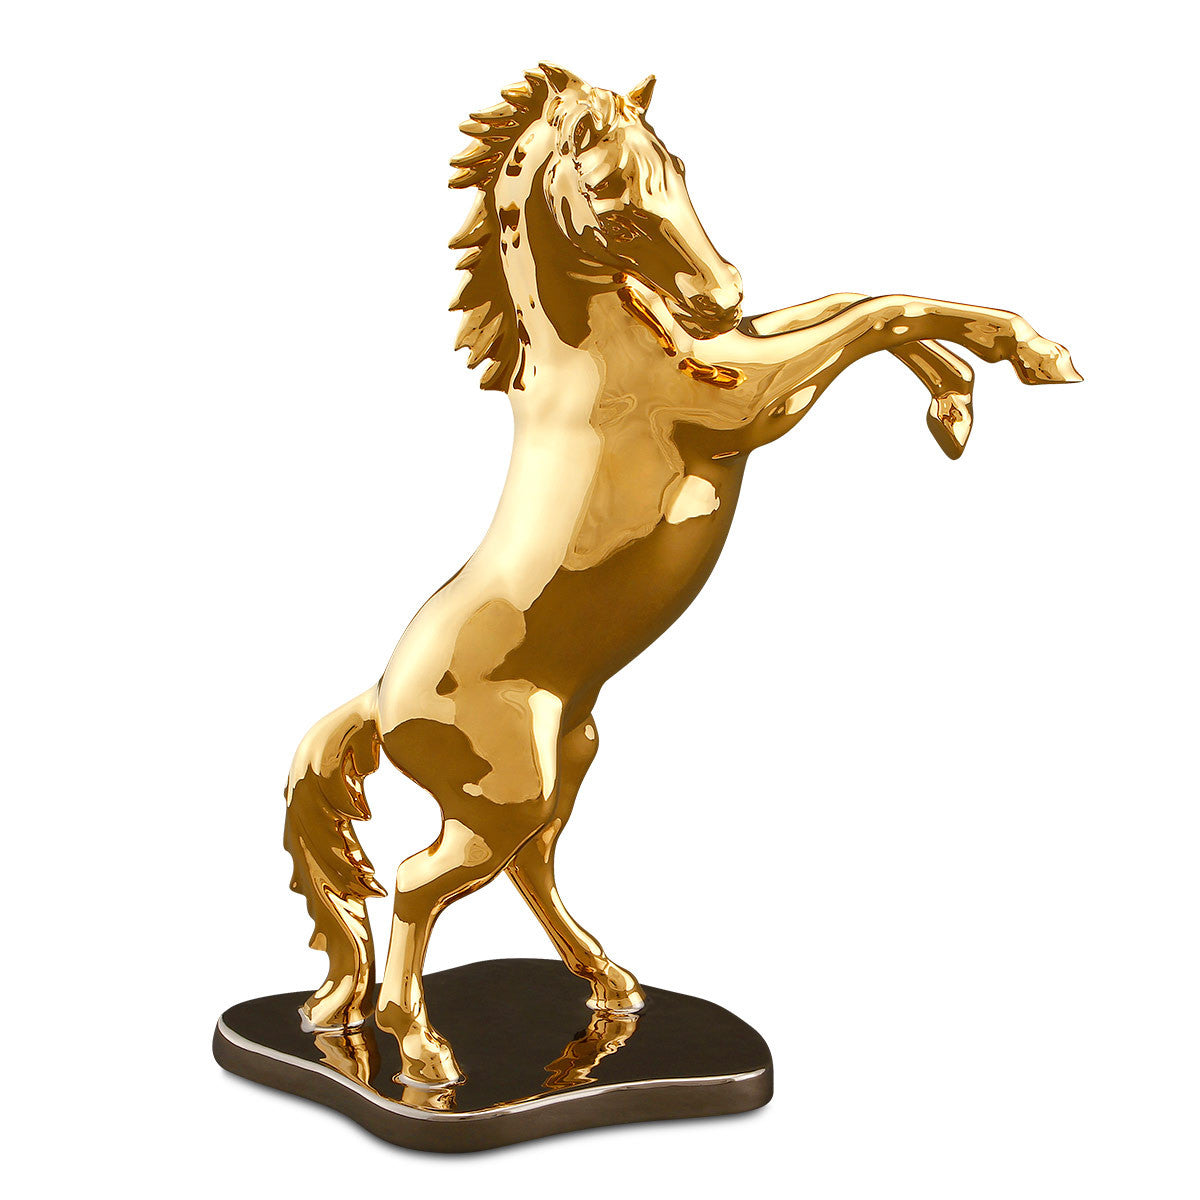 Ceramic horse statue on base in gold and platinum